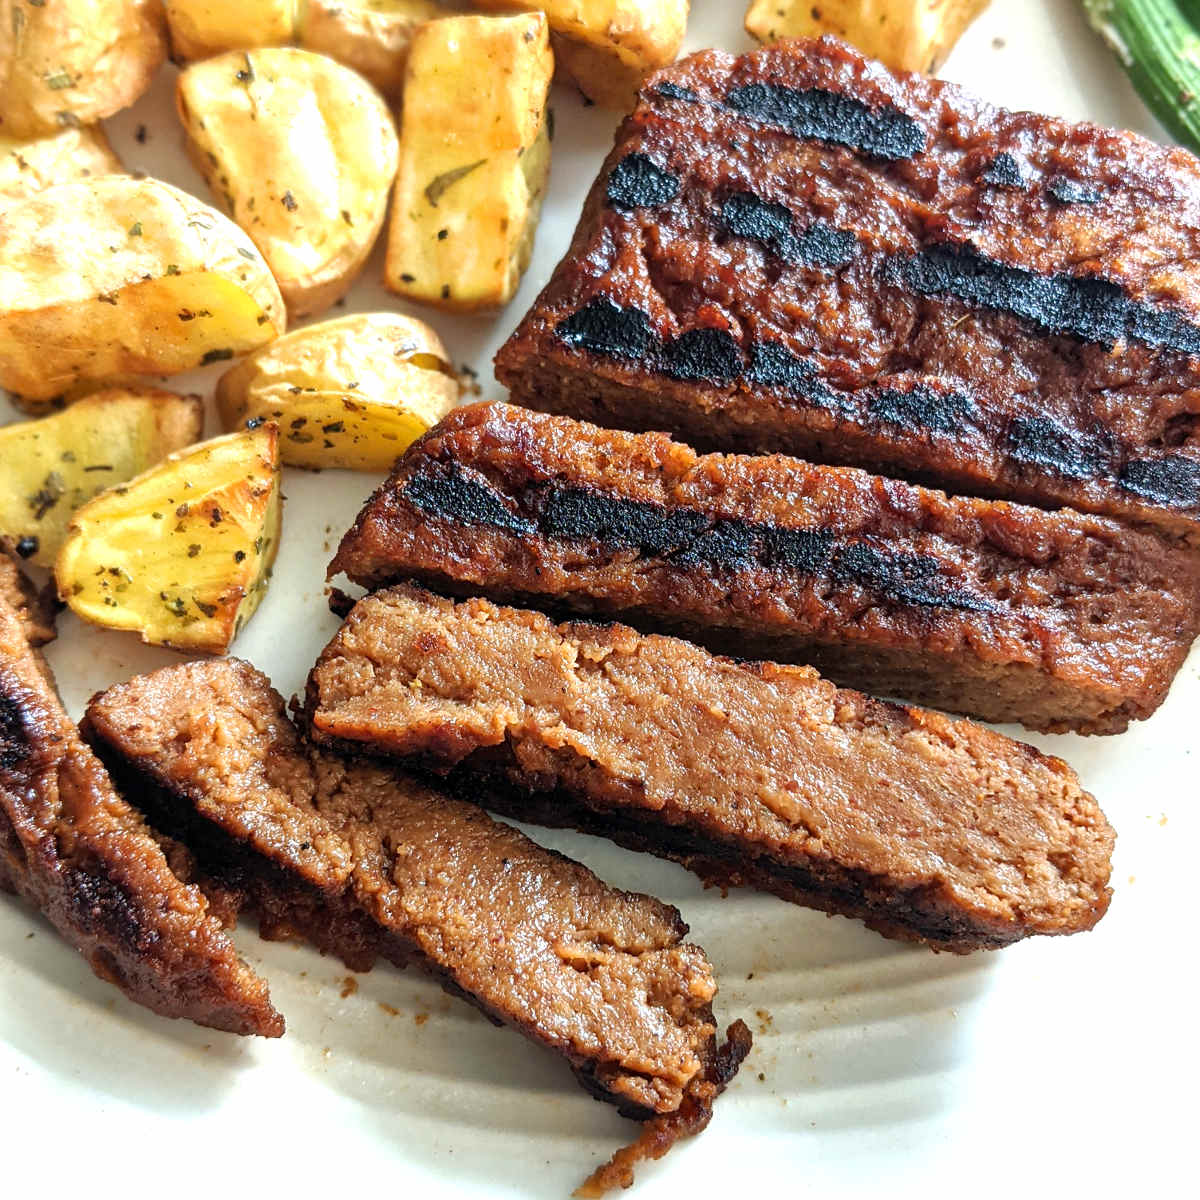 Vegan steak cut into slices on a plate with golden potatoes.